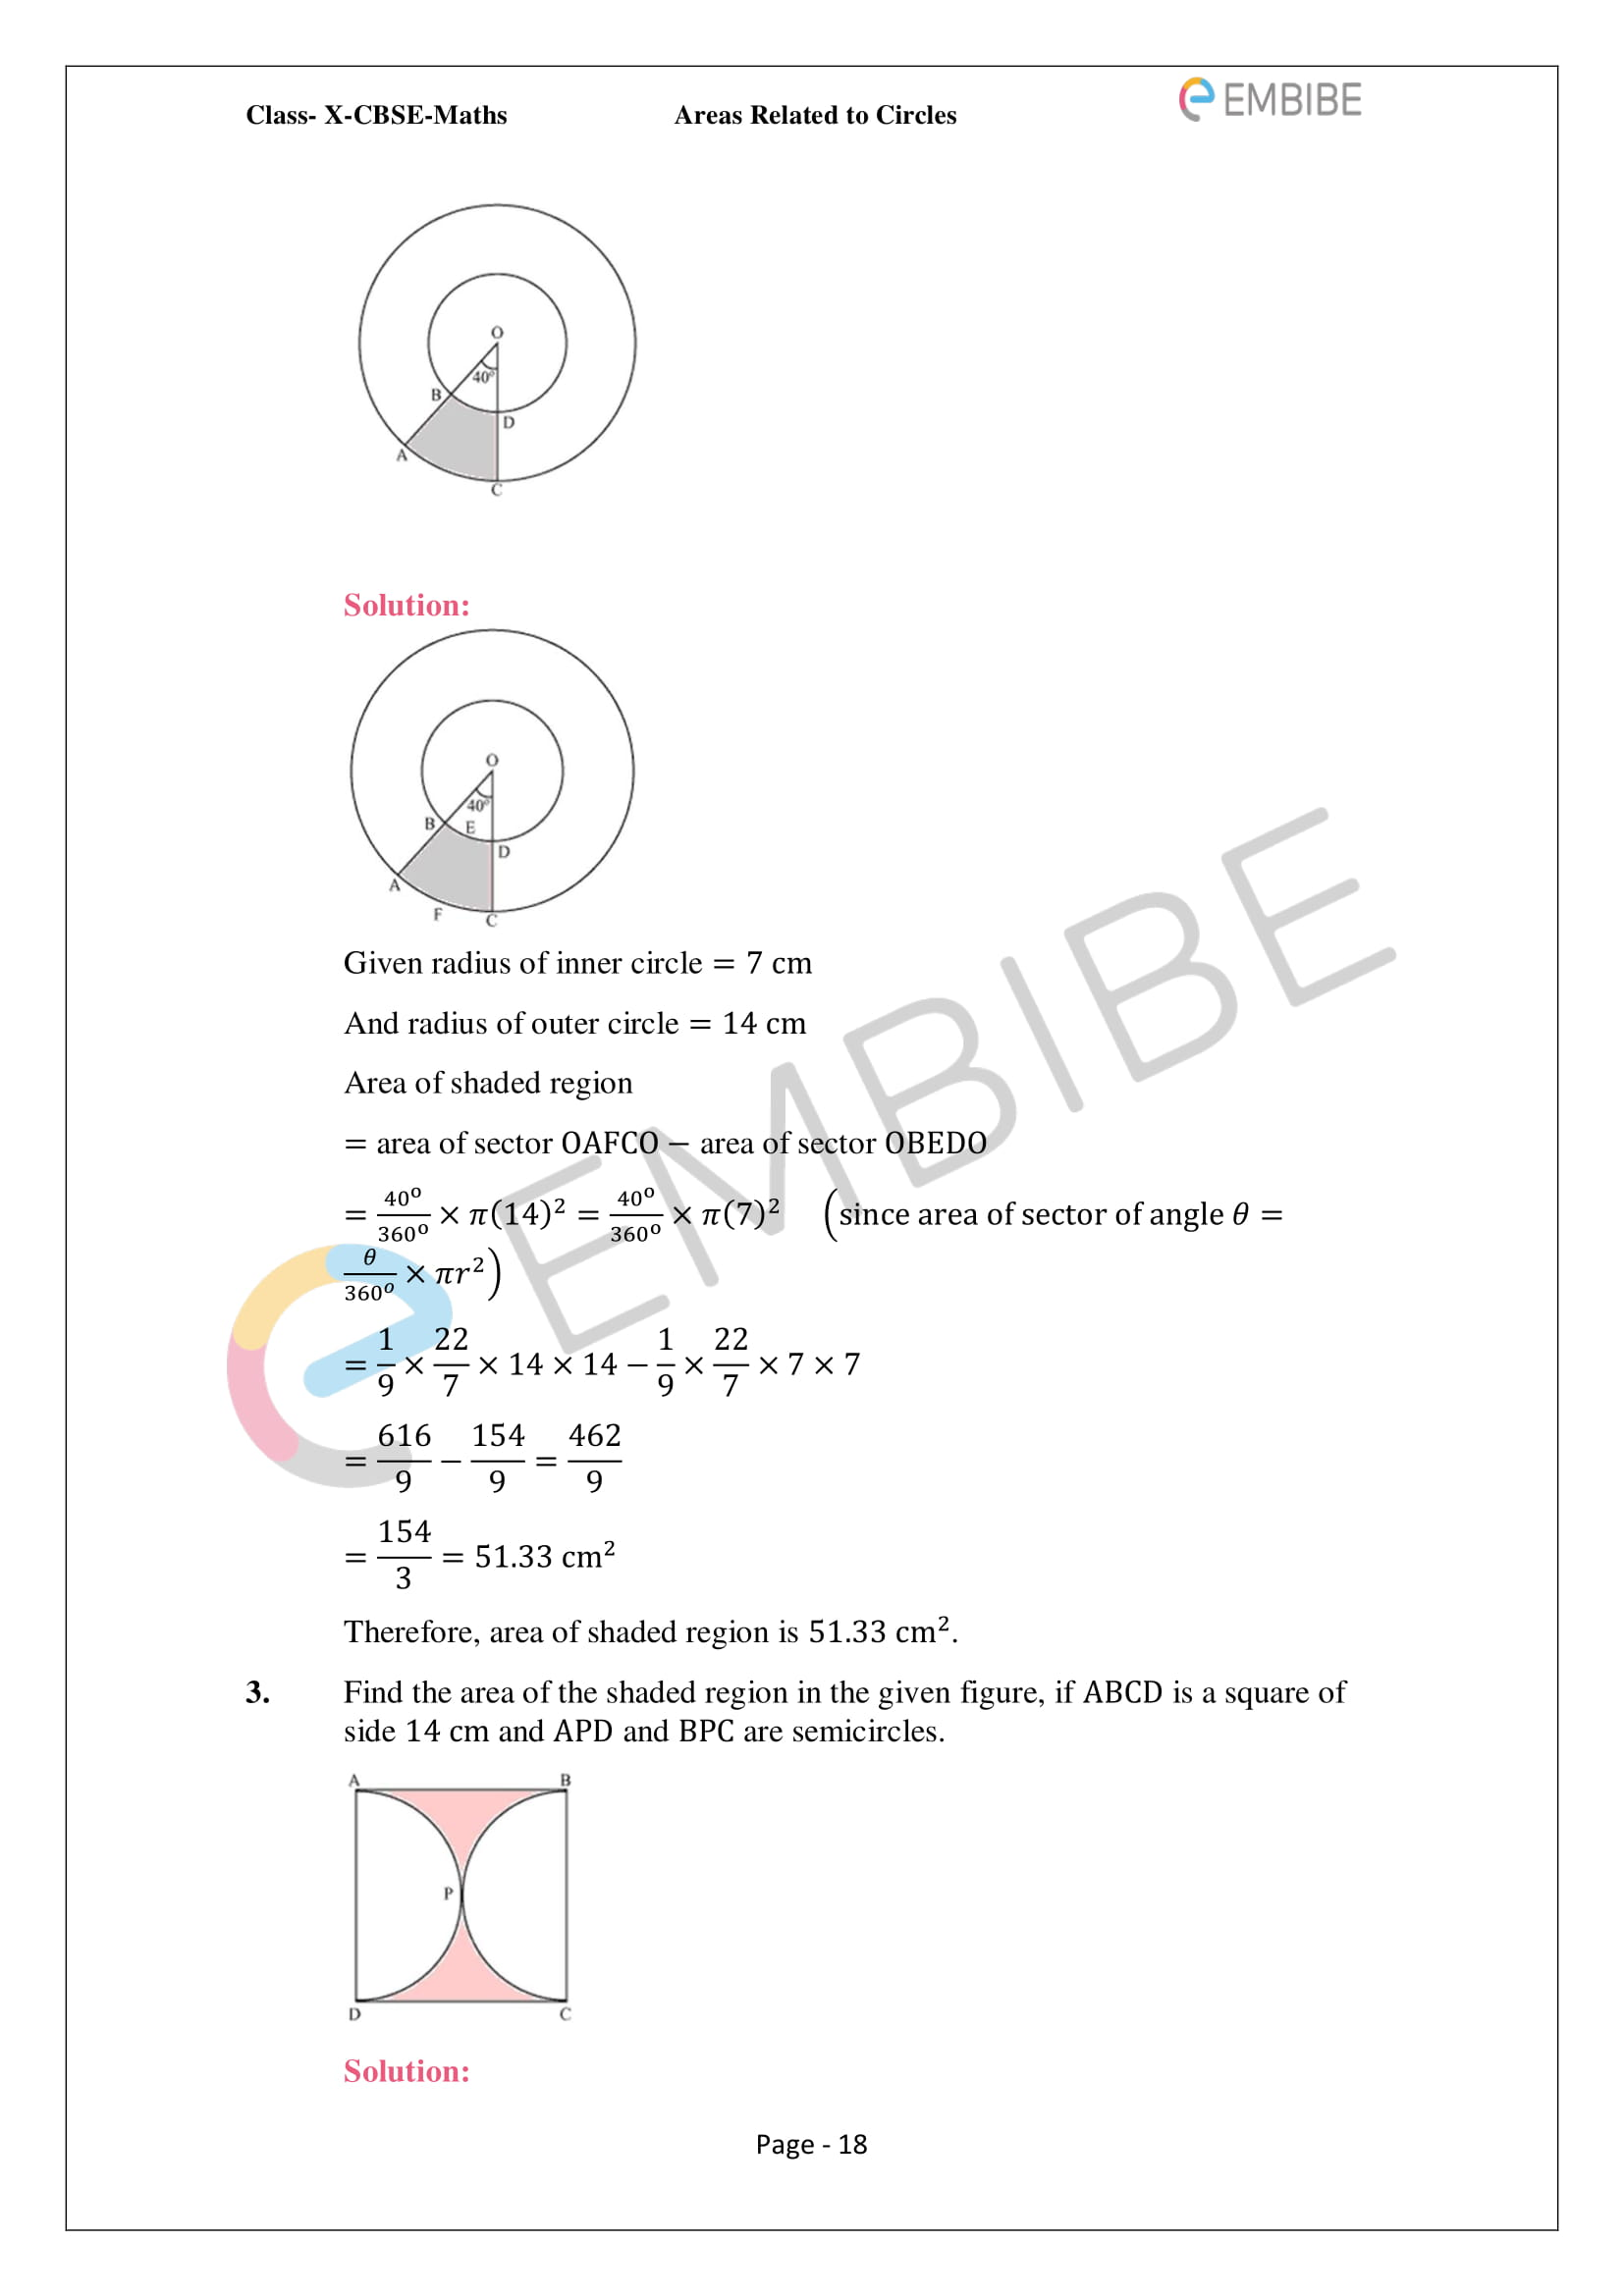 CBSE NCERT Solutions For Class 10 Maths Chapter 12 - Areas Related To Circle - 18